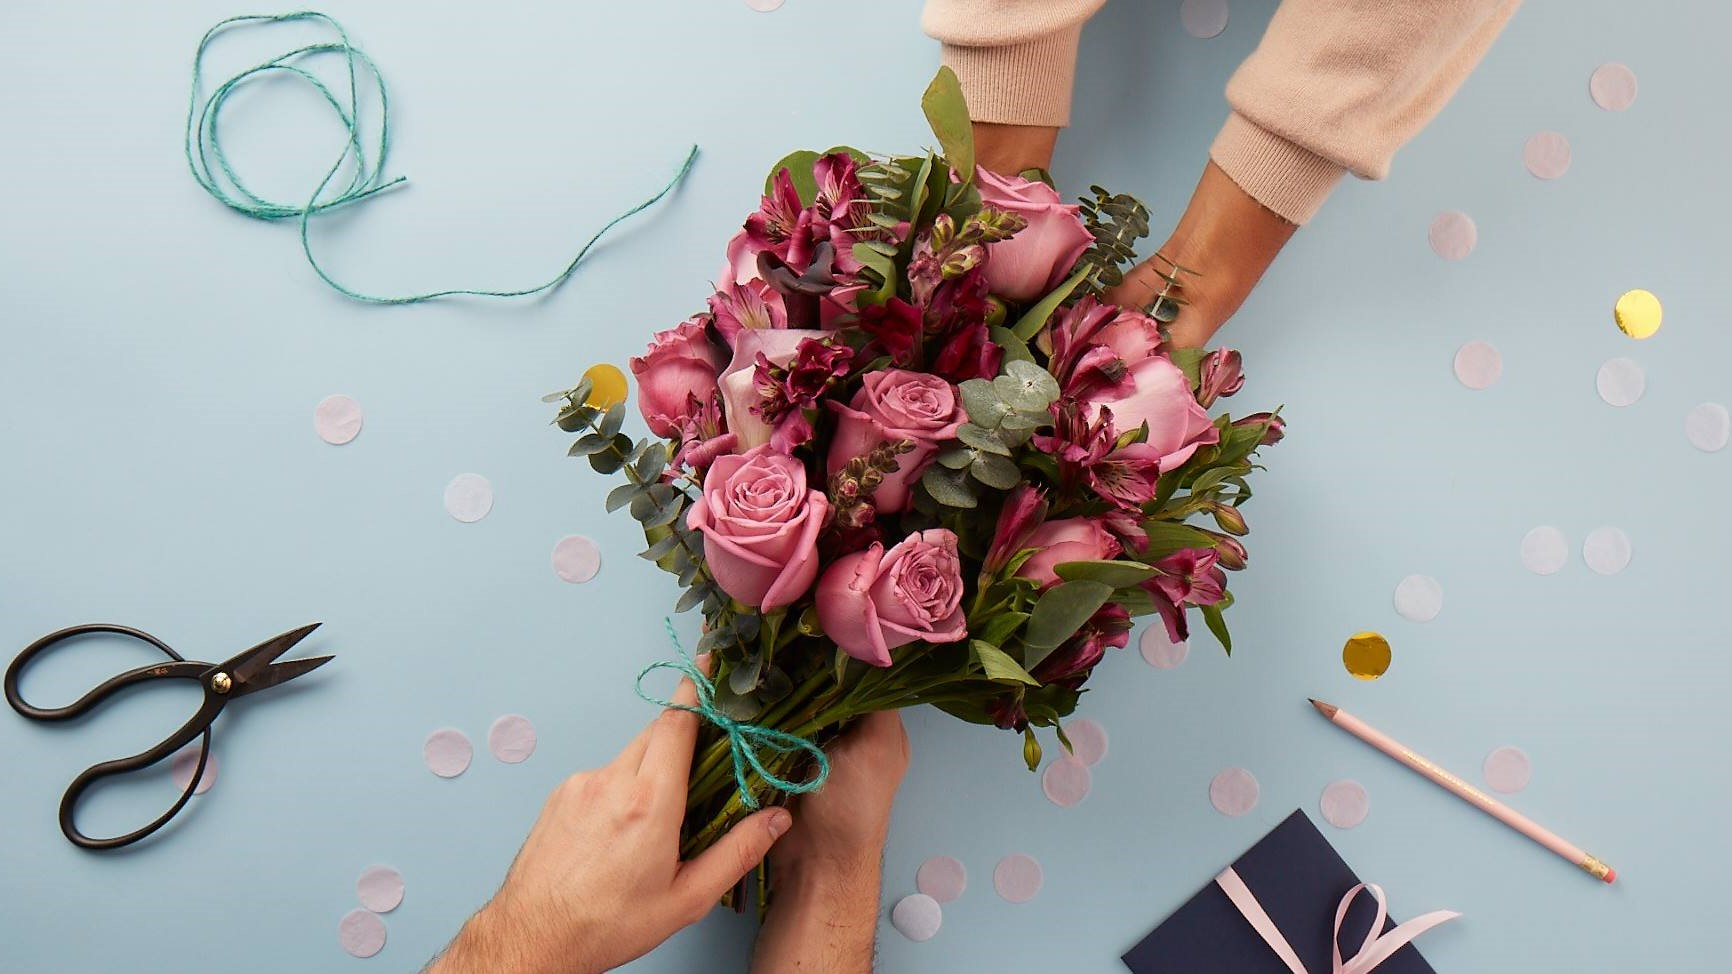 Tips and Tricks to Get the Best Flowers and Avoid the Trouble of Ordering